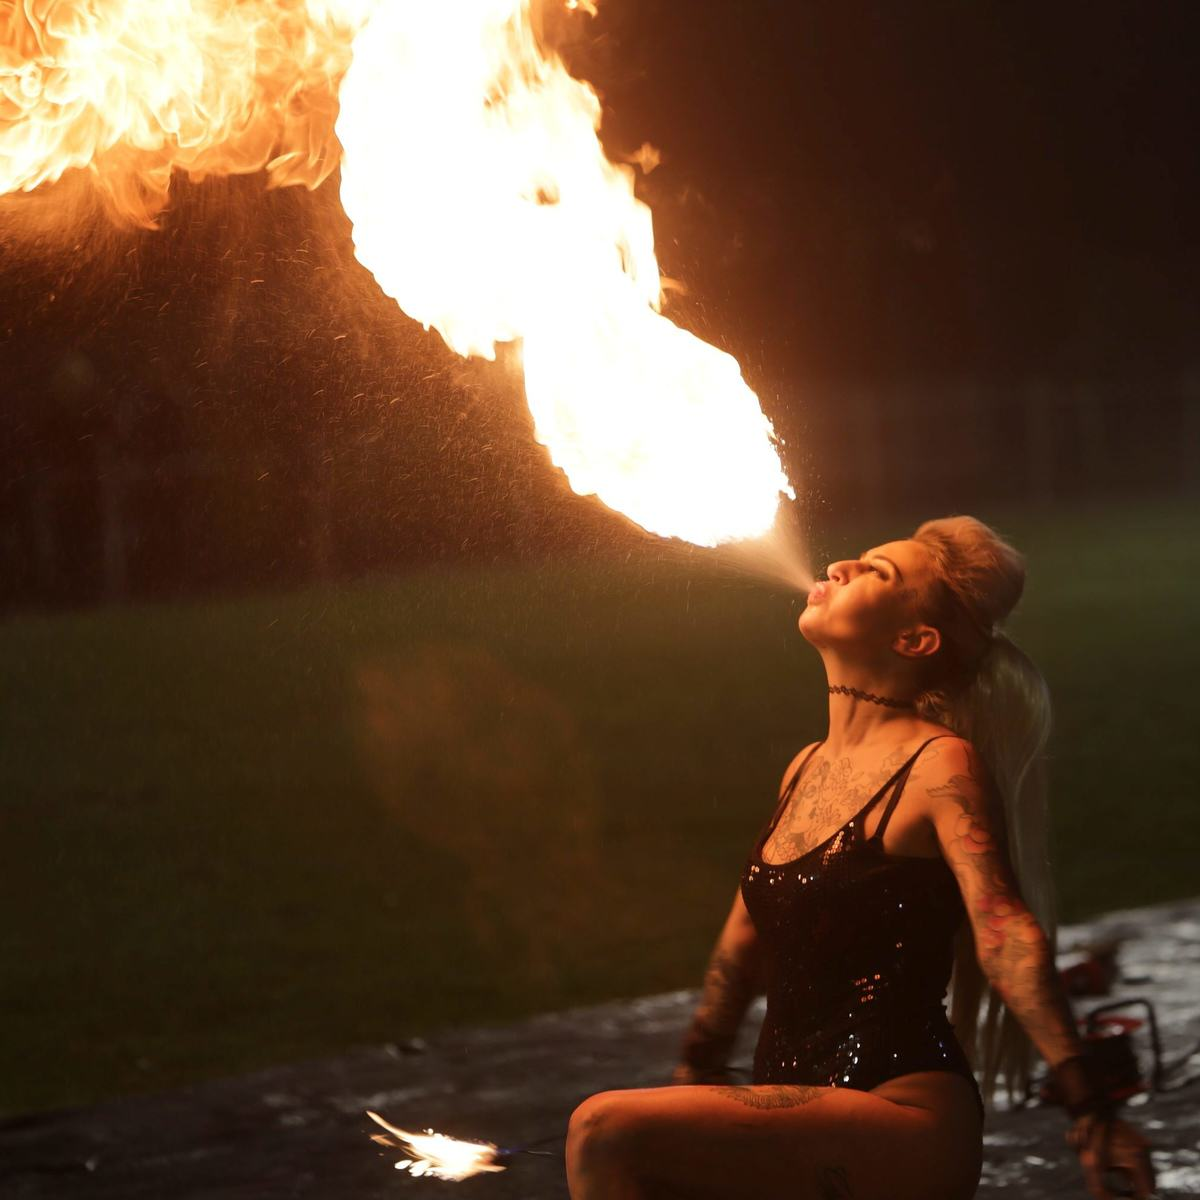 Mayor Hired Leather Clad Stunt Women For Family Bonfire Night Display UNILAD SWNS SPARKS 01855996